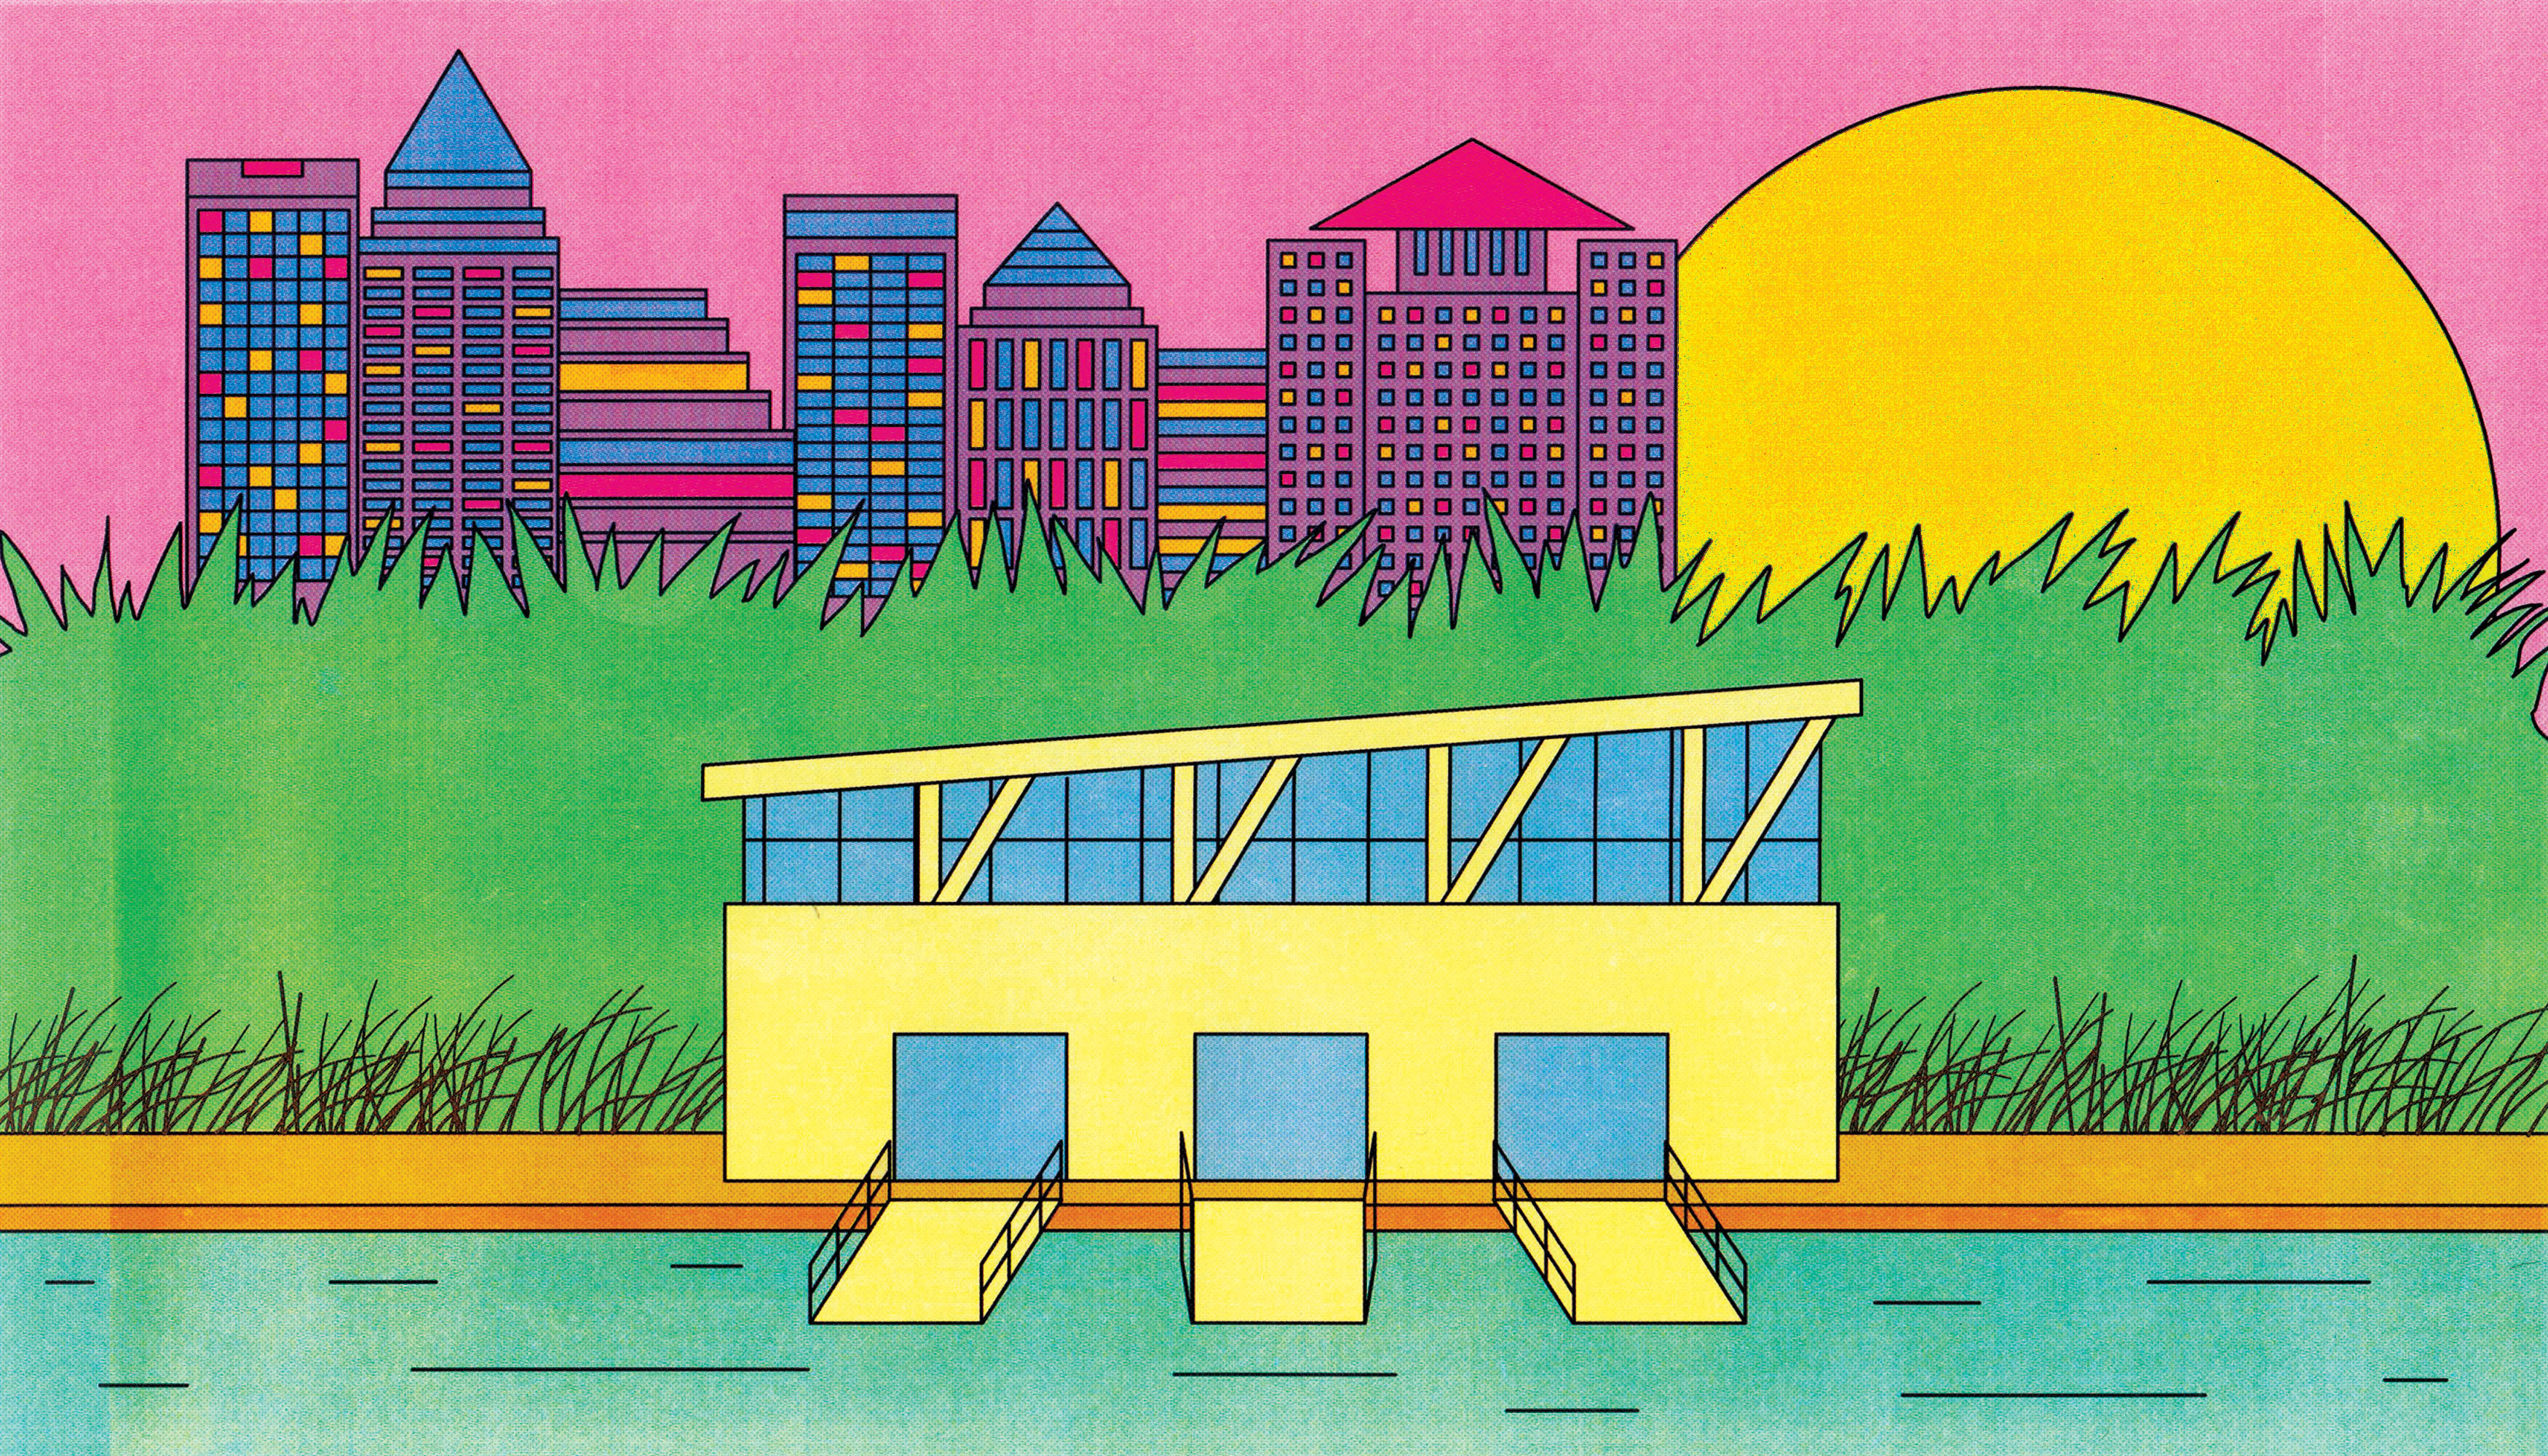 A yellow geometric, modern building with a slanted roof and glass panel walls sits at the edge of a body of water. Behind the building is tall plant life and a in the distance there is a city skyline. Illustration.